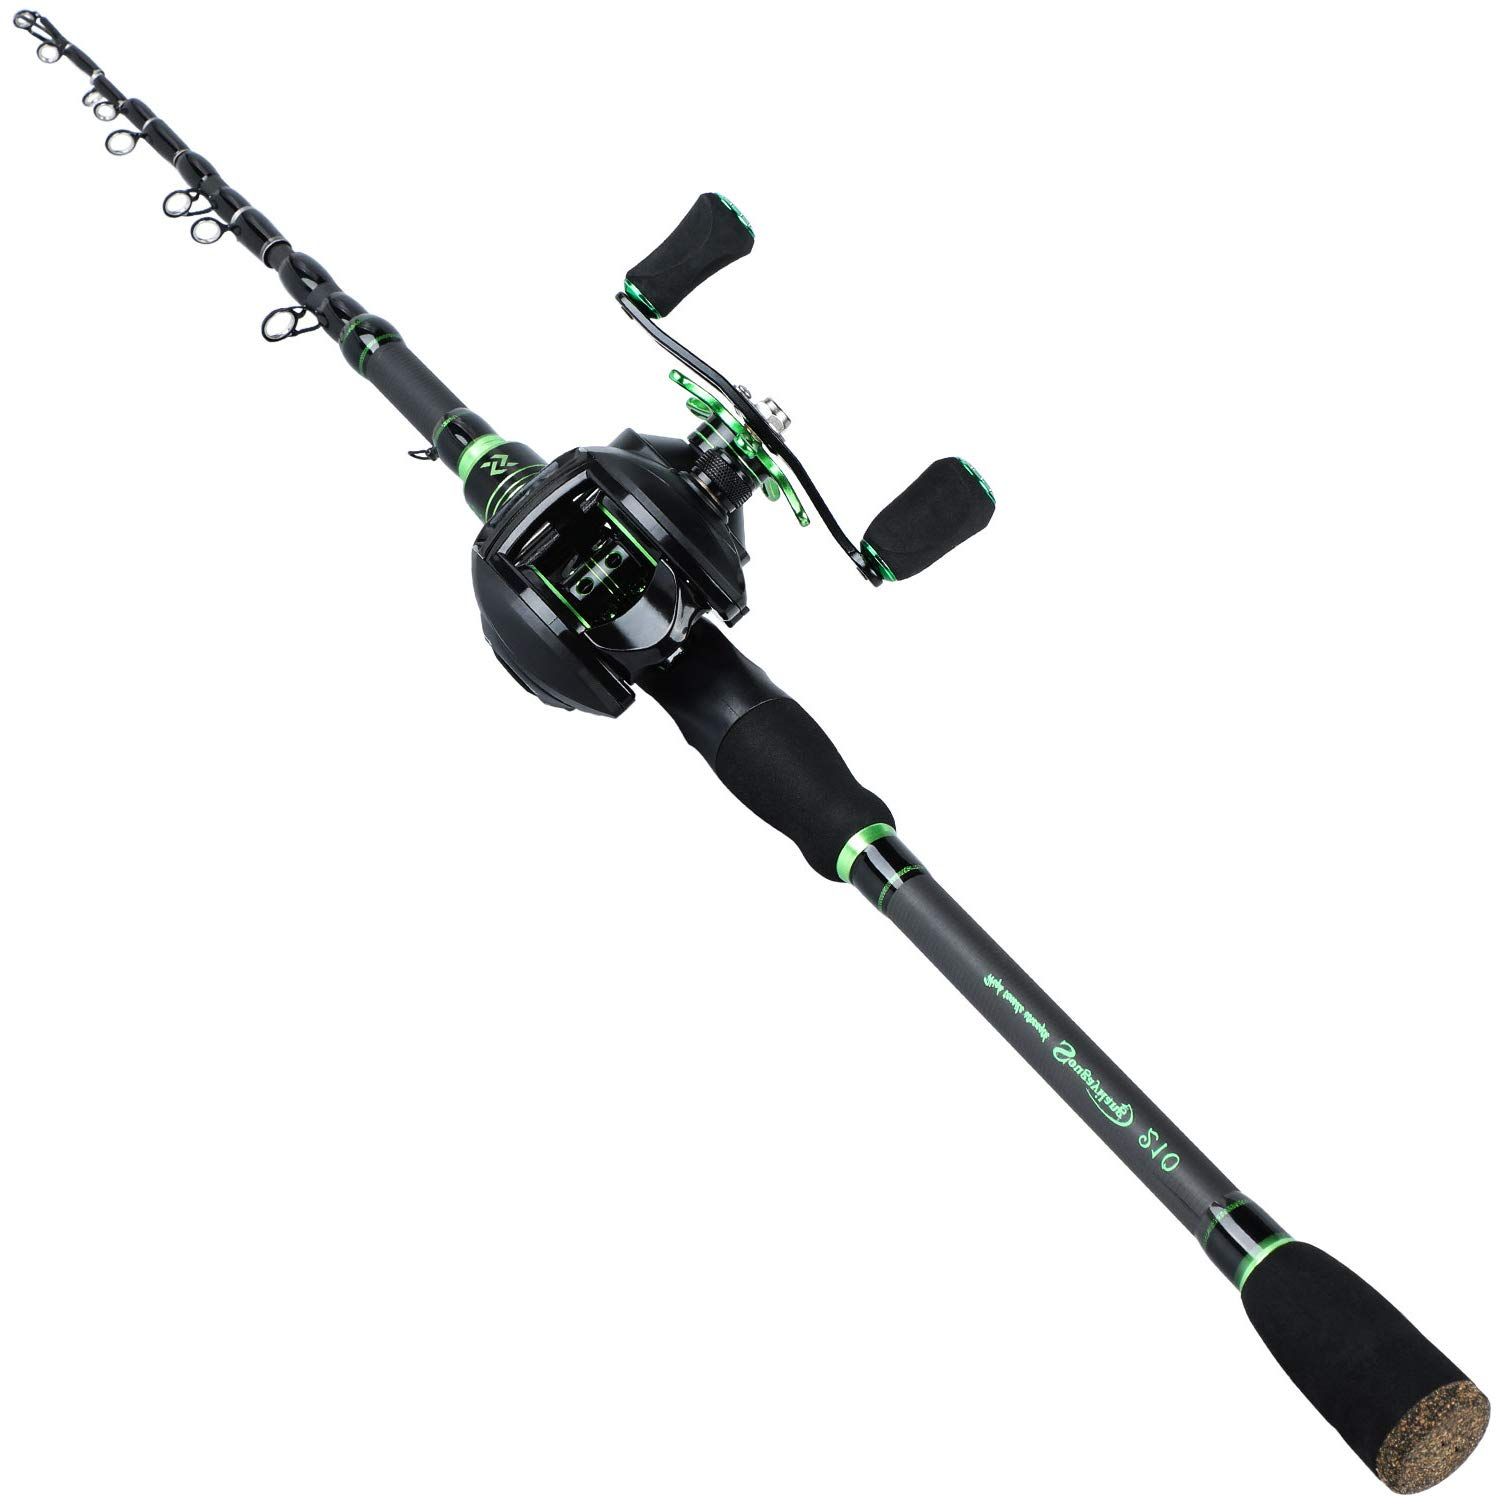 What to Look for in a Backpacking Fishing Pole?